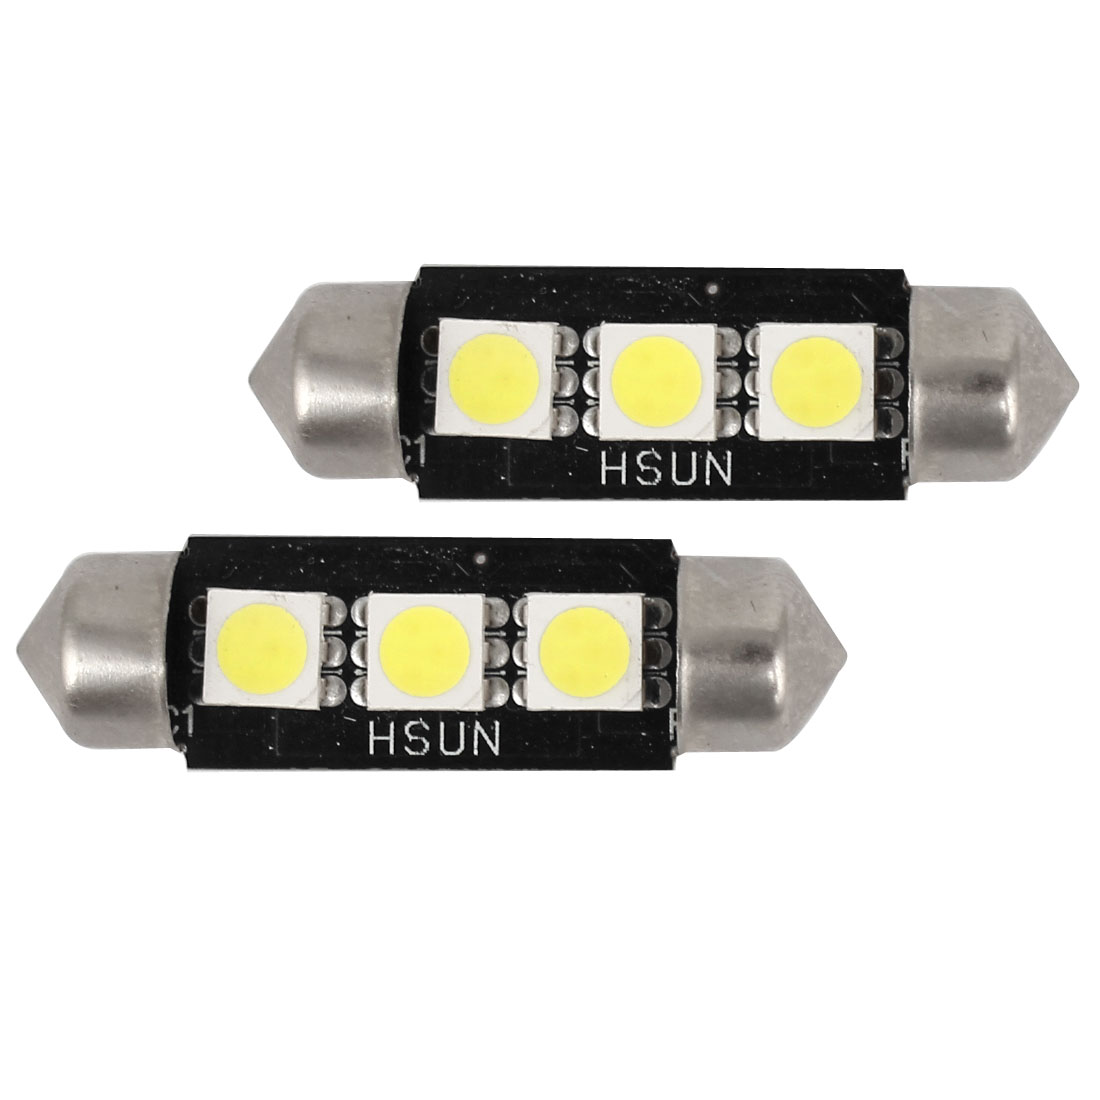 2x 3 SMD LED 36mm 239 272 CANBUS ERROR WHITE NUMBER PLATE LIGHT FESTOON BULB